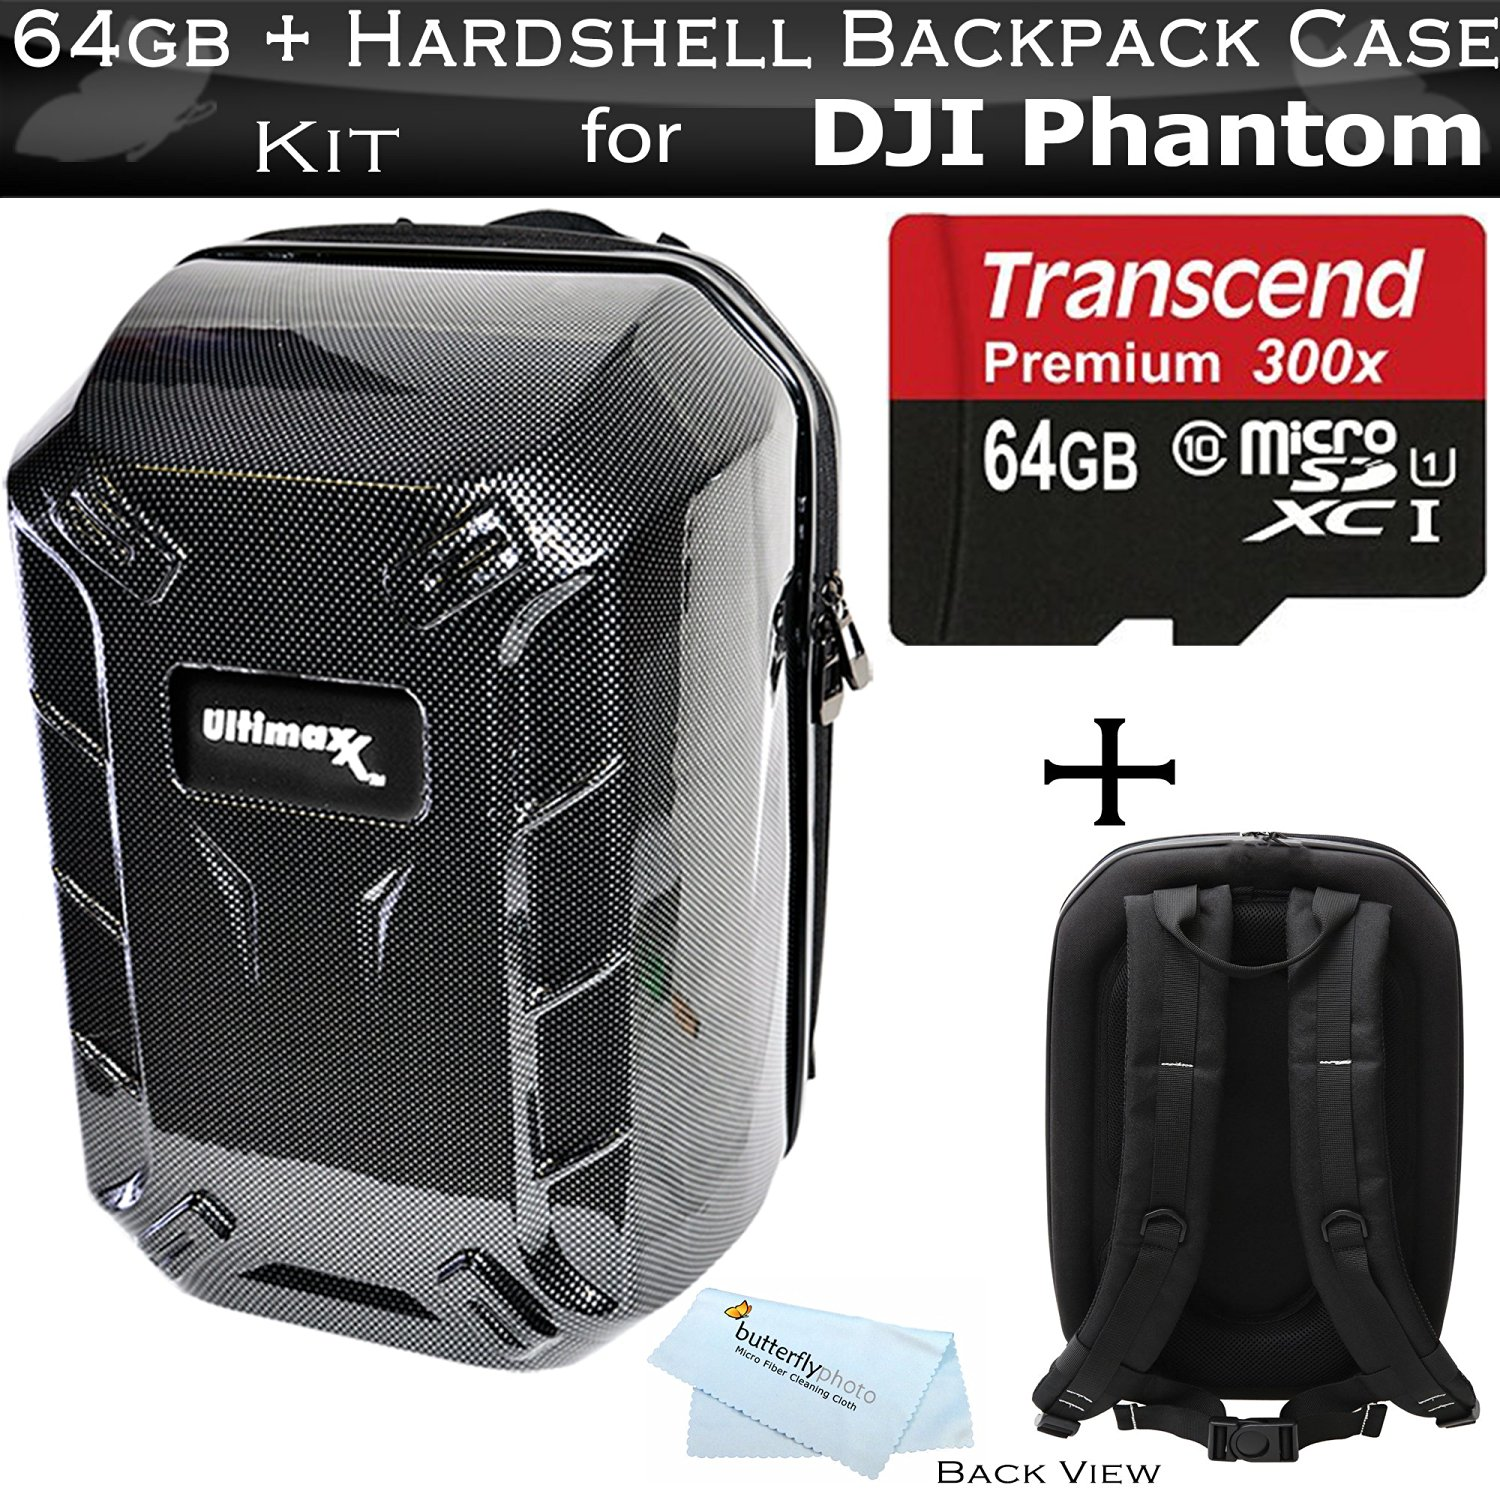 Hardshell Backpack Case for DJI Quadcopter Drones Fits with All DJI Phantom Drone Models DJI Phantom 1, Phantom 2, and Phantom 3, Phantom 3 4K Drones + 64GB High Speed Micro SD Memory Card + More